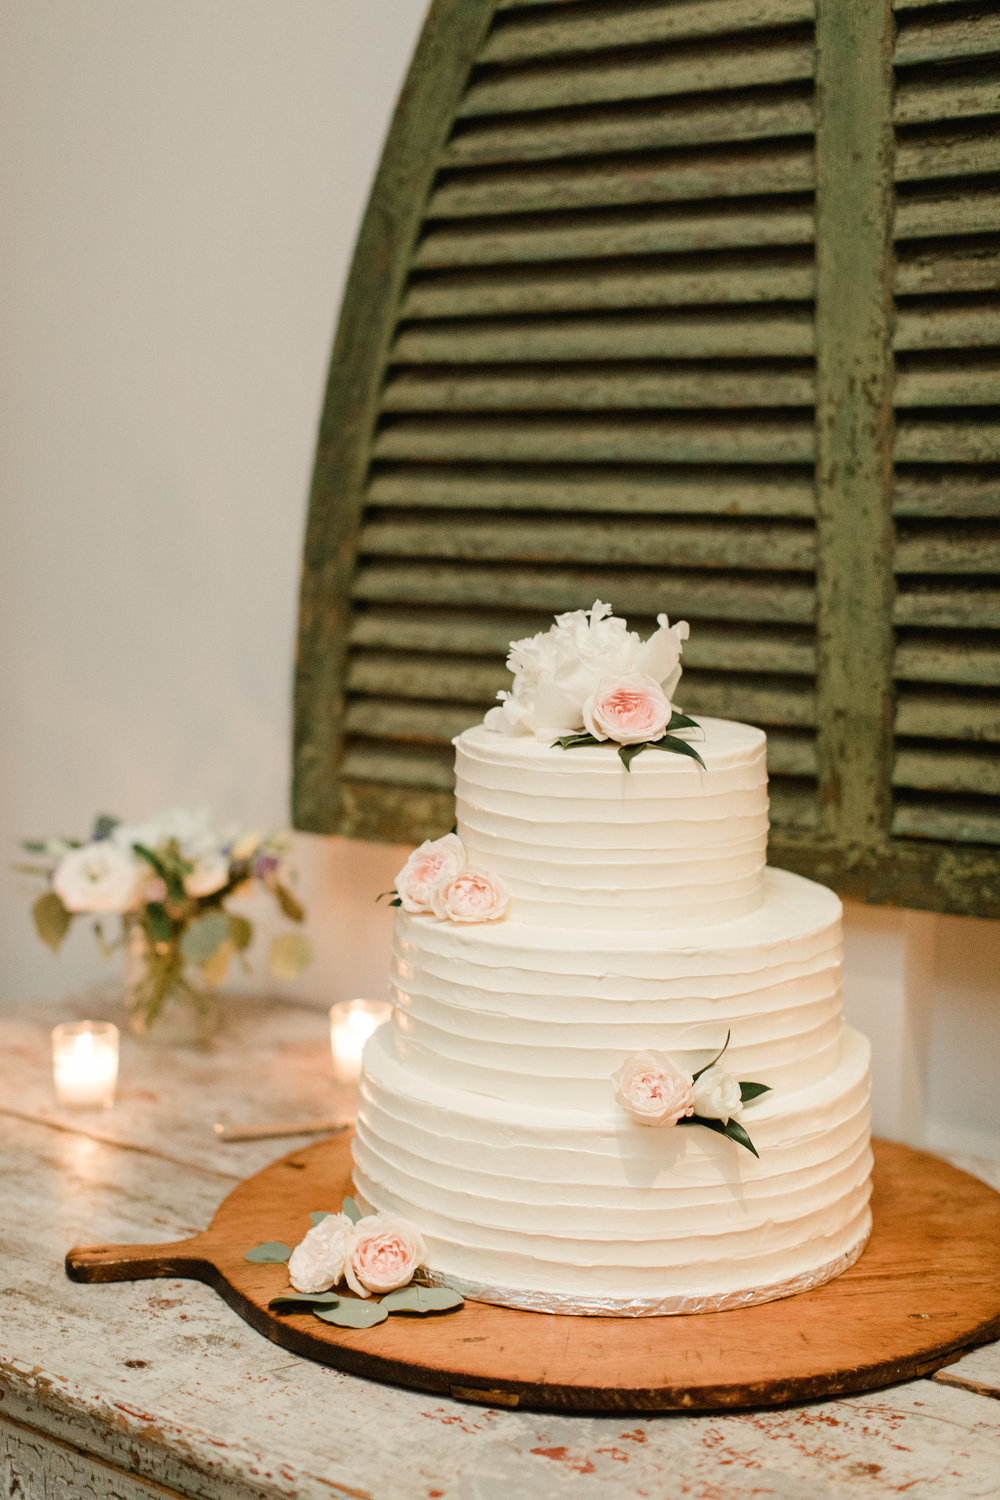 Curren-Paskalides Wedding Cake.jpg